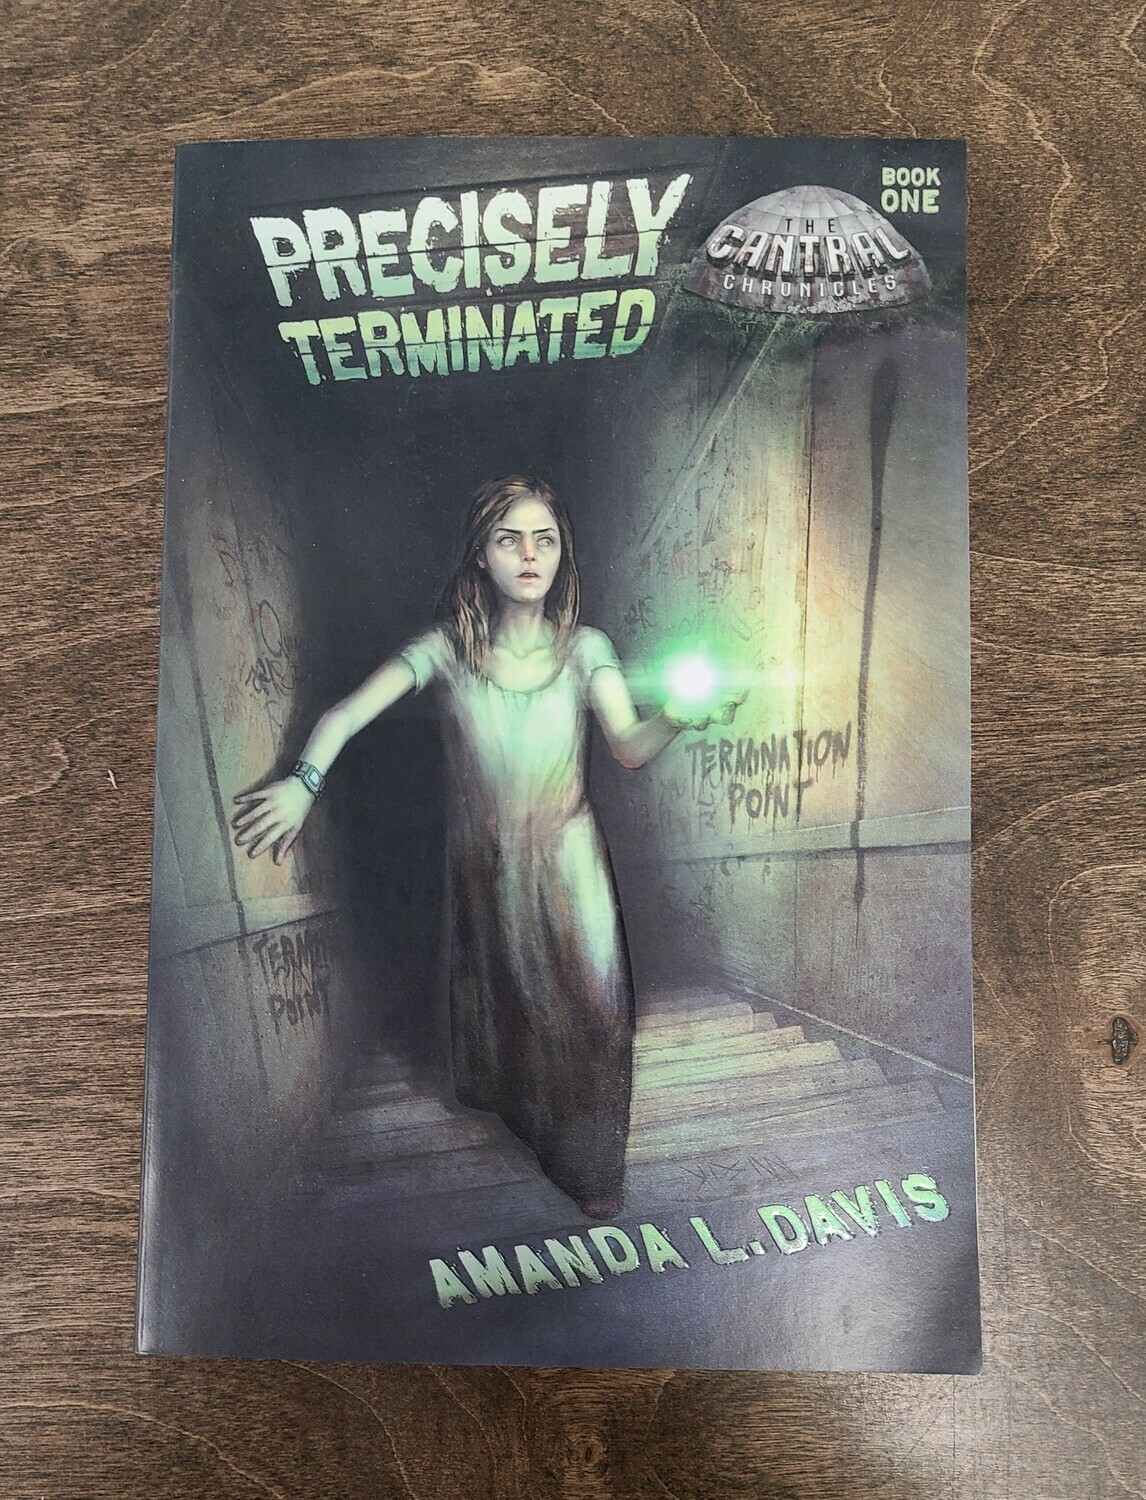 Precisely Terminated by Amanda L. Davis